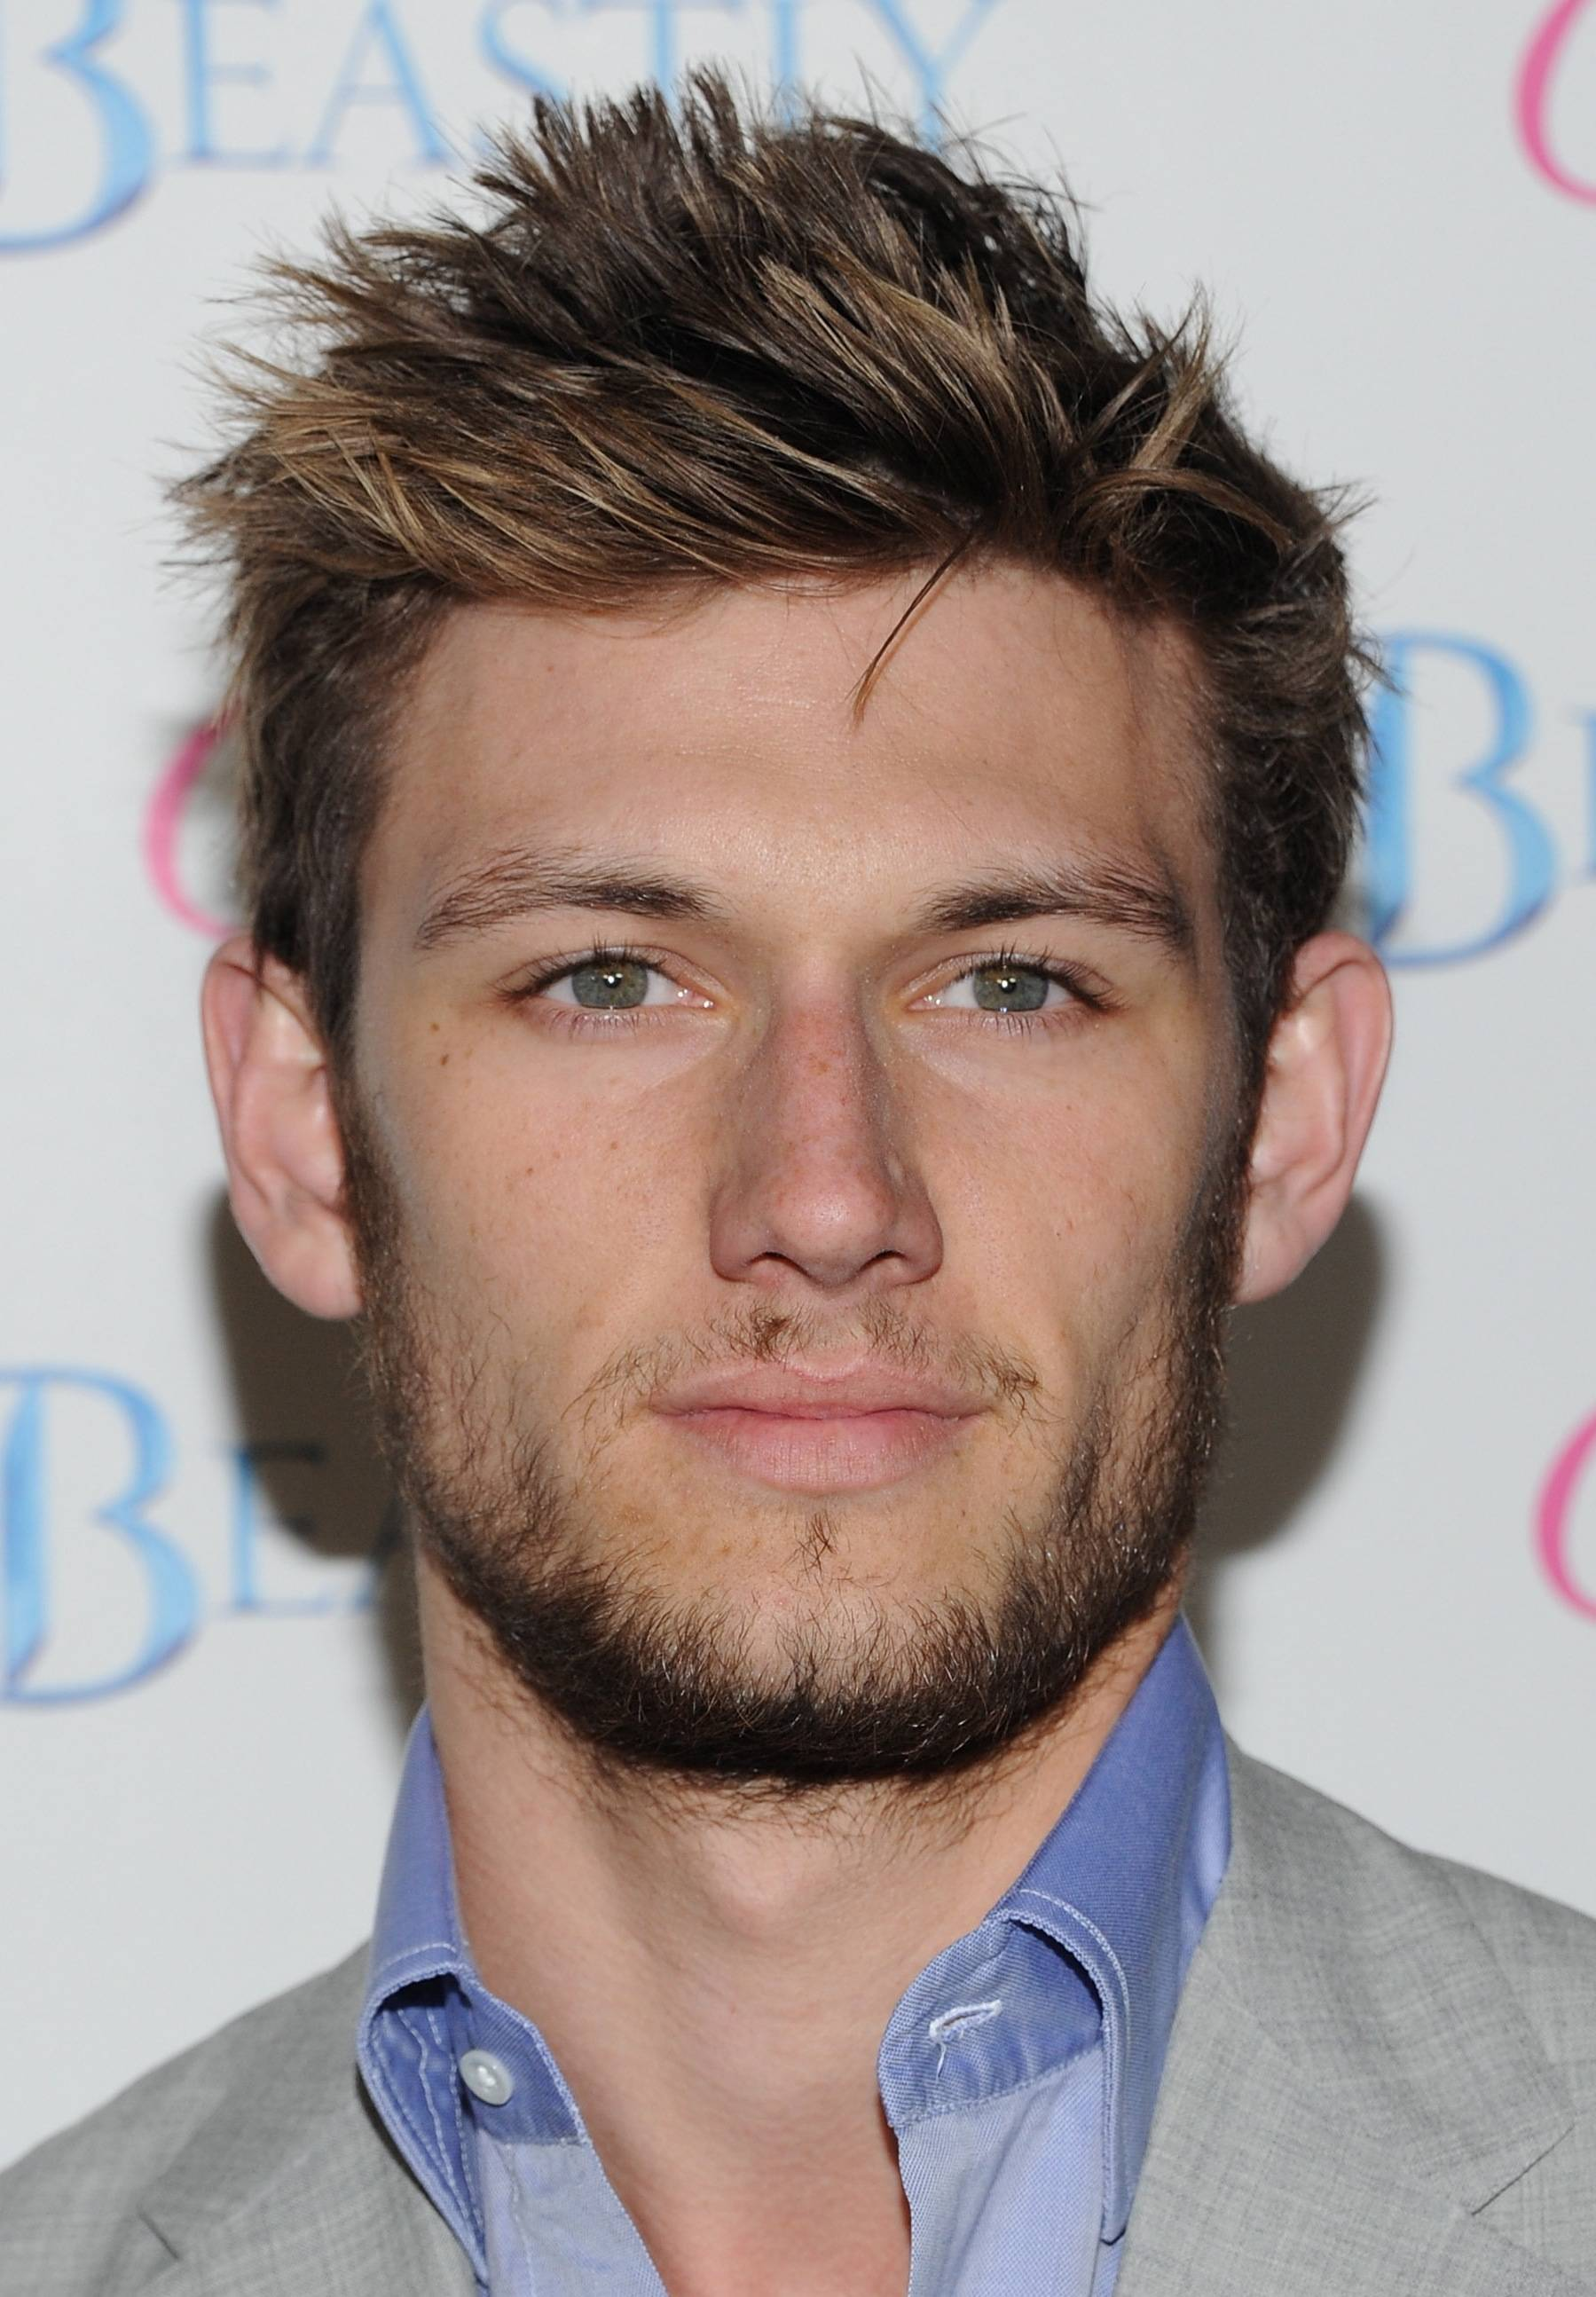 The 26-year old son of father Richard Pettyfer and mother Lee Ireland Robinson, 181 cm tall Alex Pettyfyer in 2017 photo